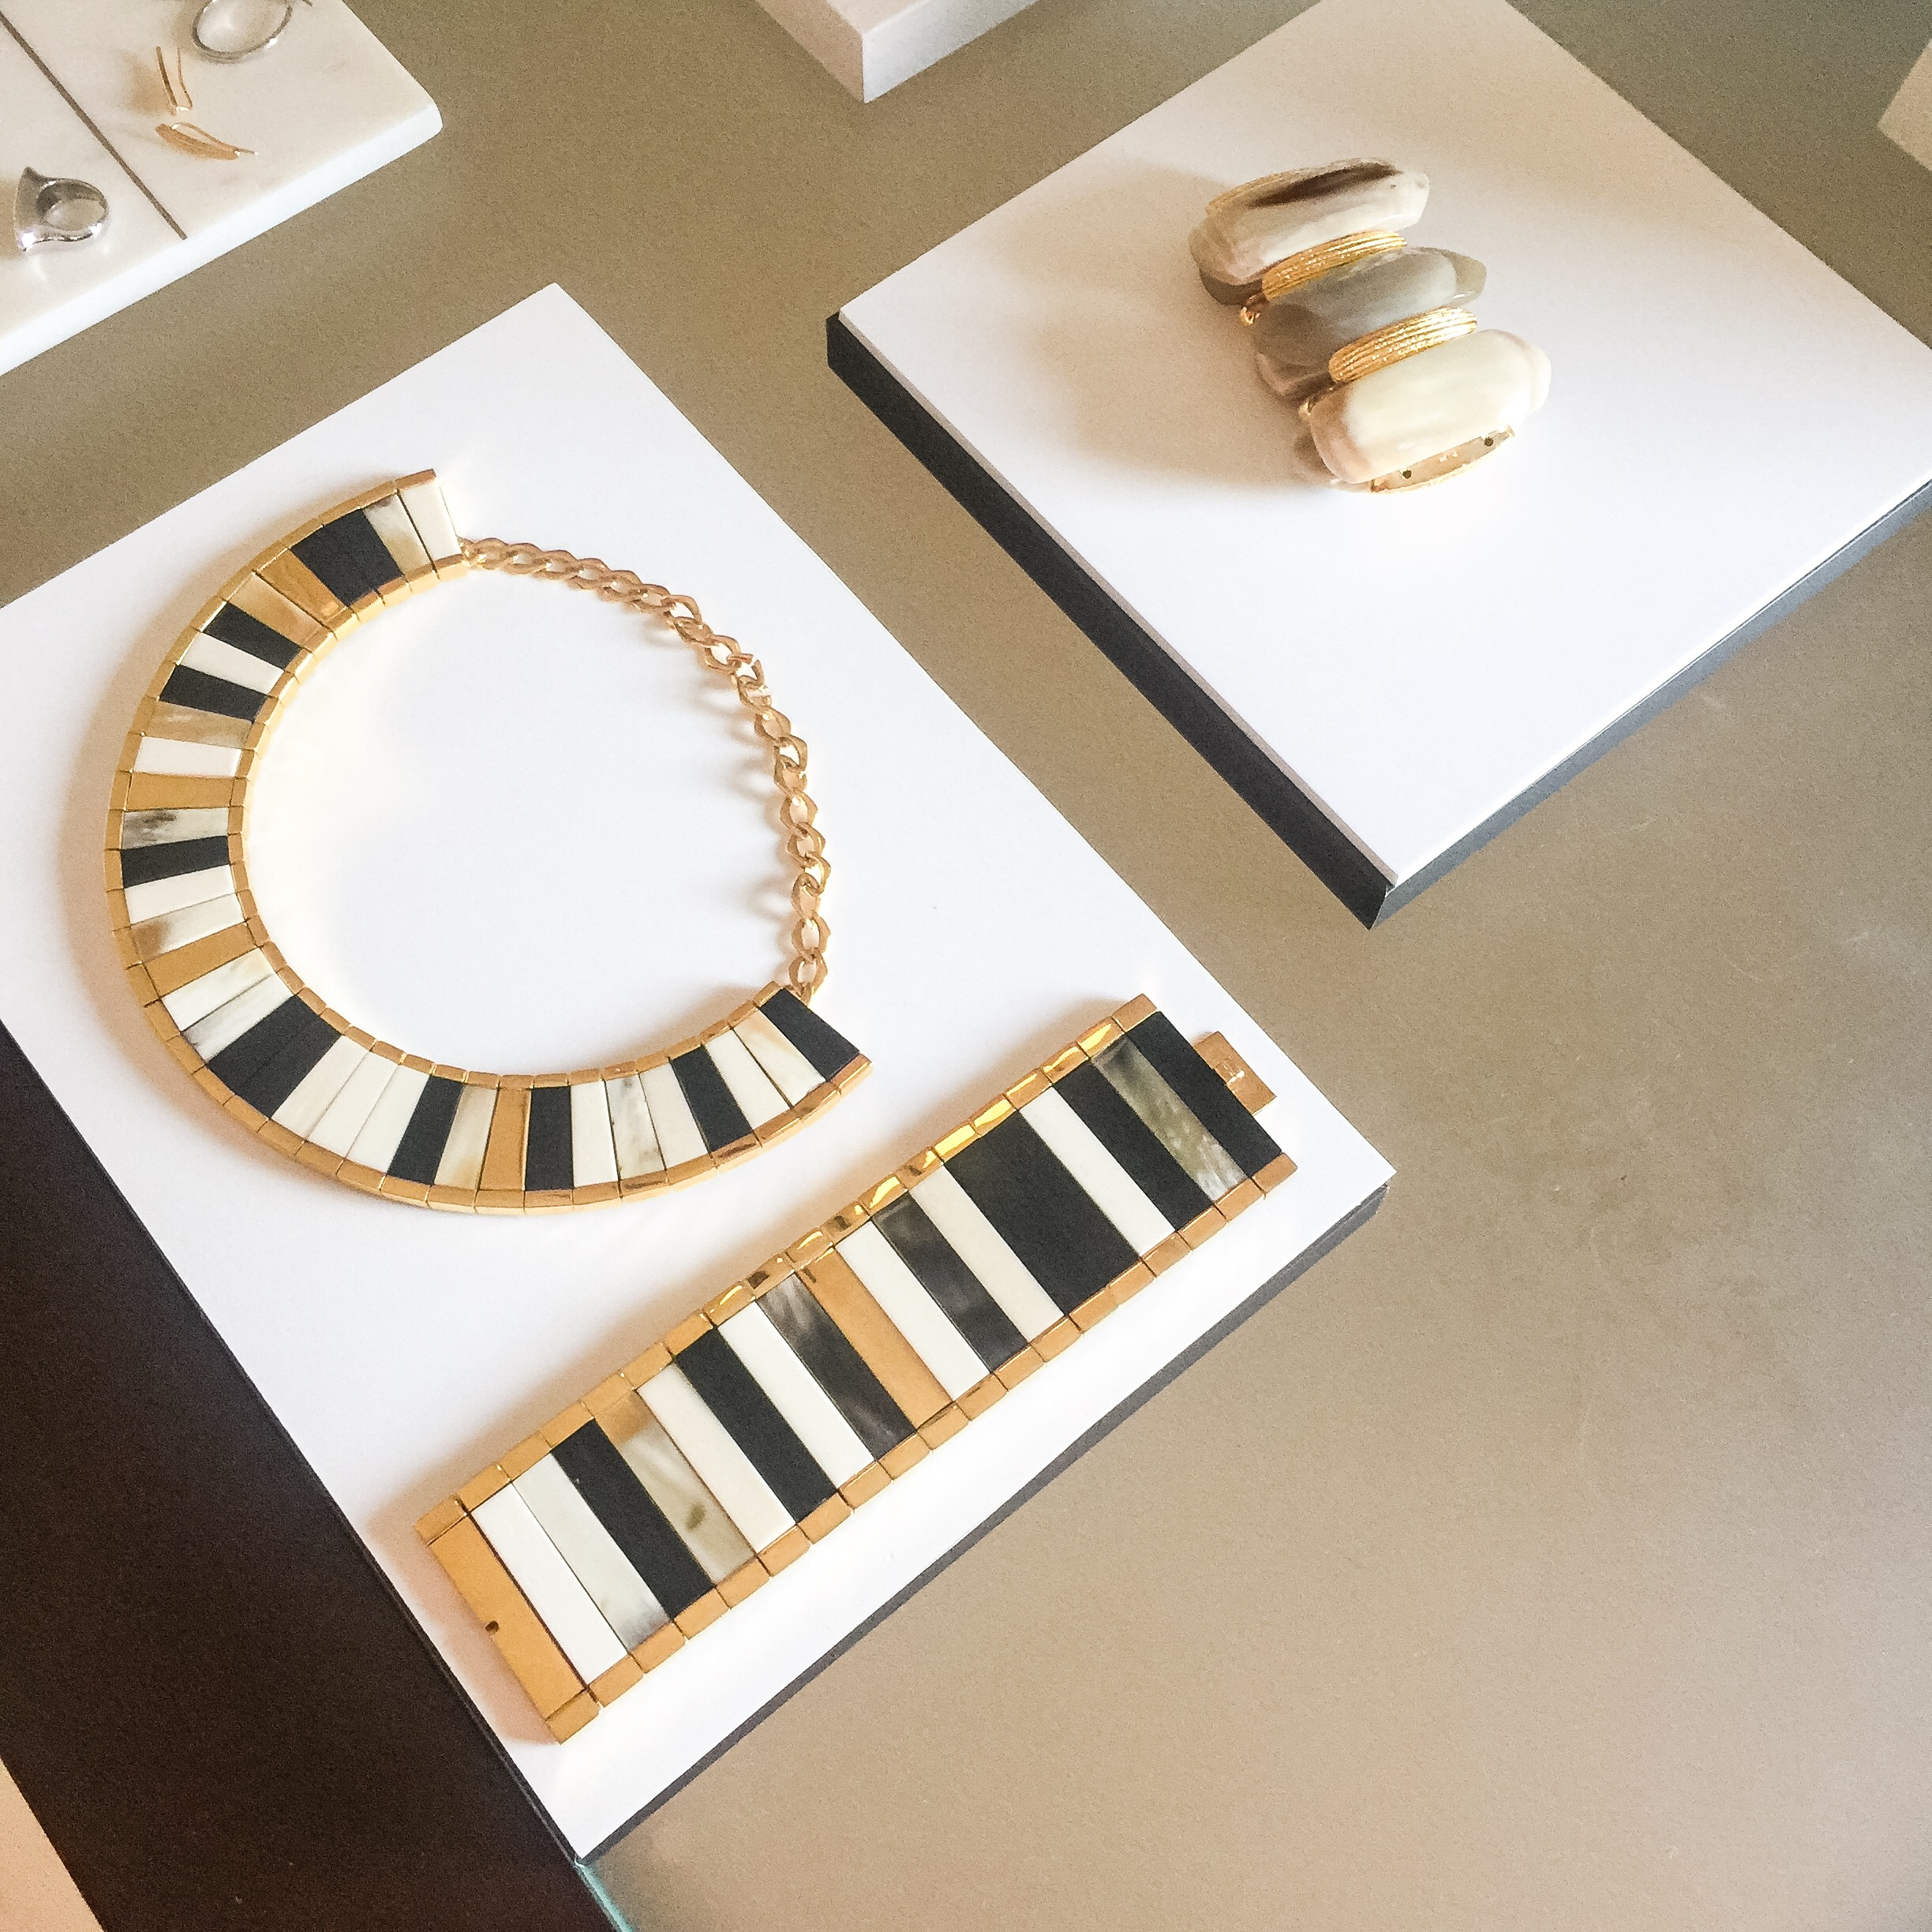 The Saba collection it comes in silver rhodium and 18 karat yellow gold plating - Hissia..